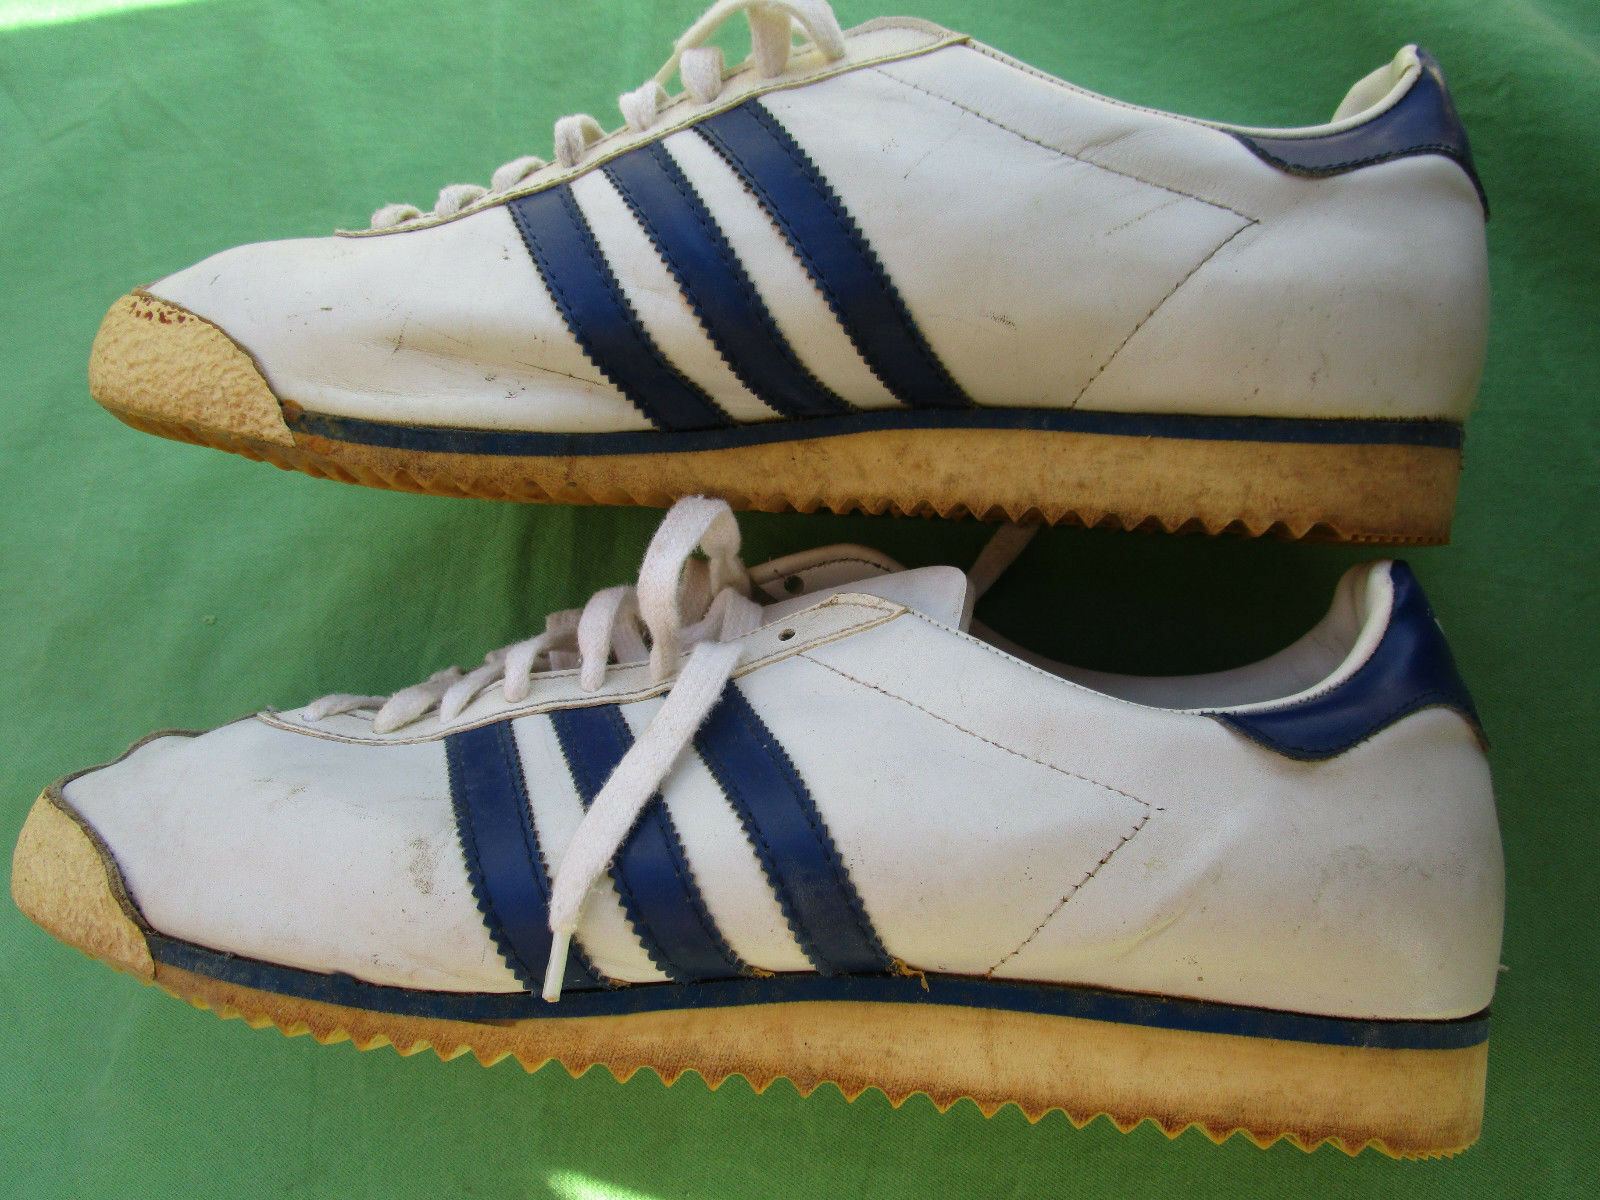 Chaussures homme  tennis cuir blanc ADIDAS ROM de collection Vintage pointure 12